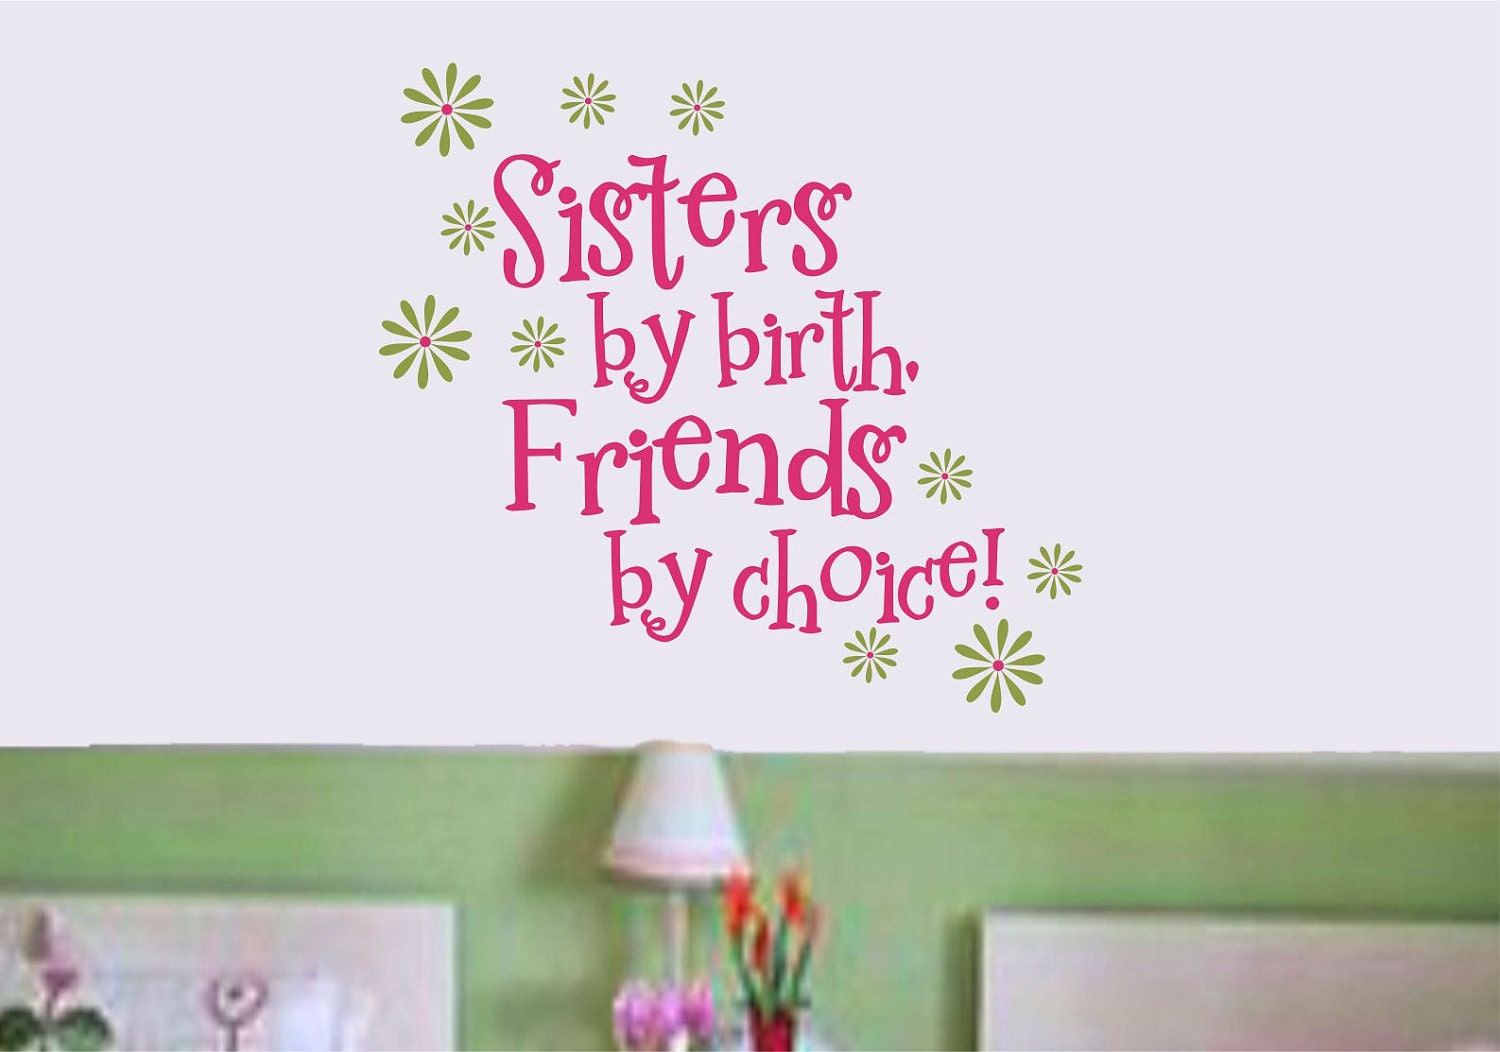 I Love My Twin Sister Quotes Quotes About Sisters Twins Quotes About Twin Sisters Quotesgram.